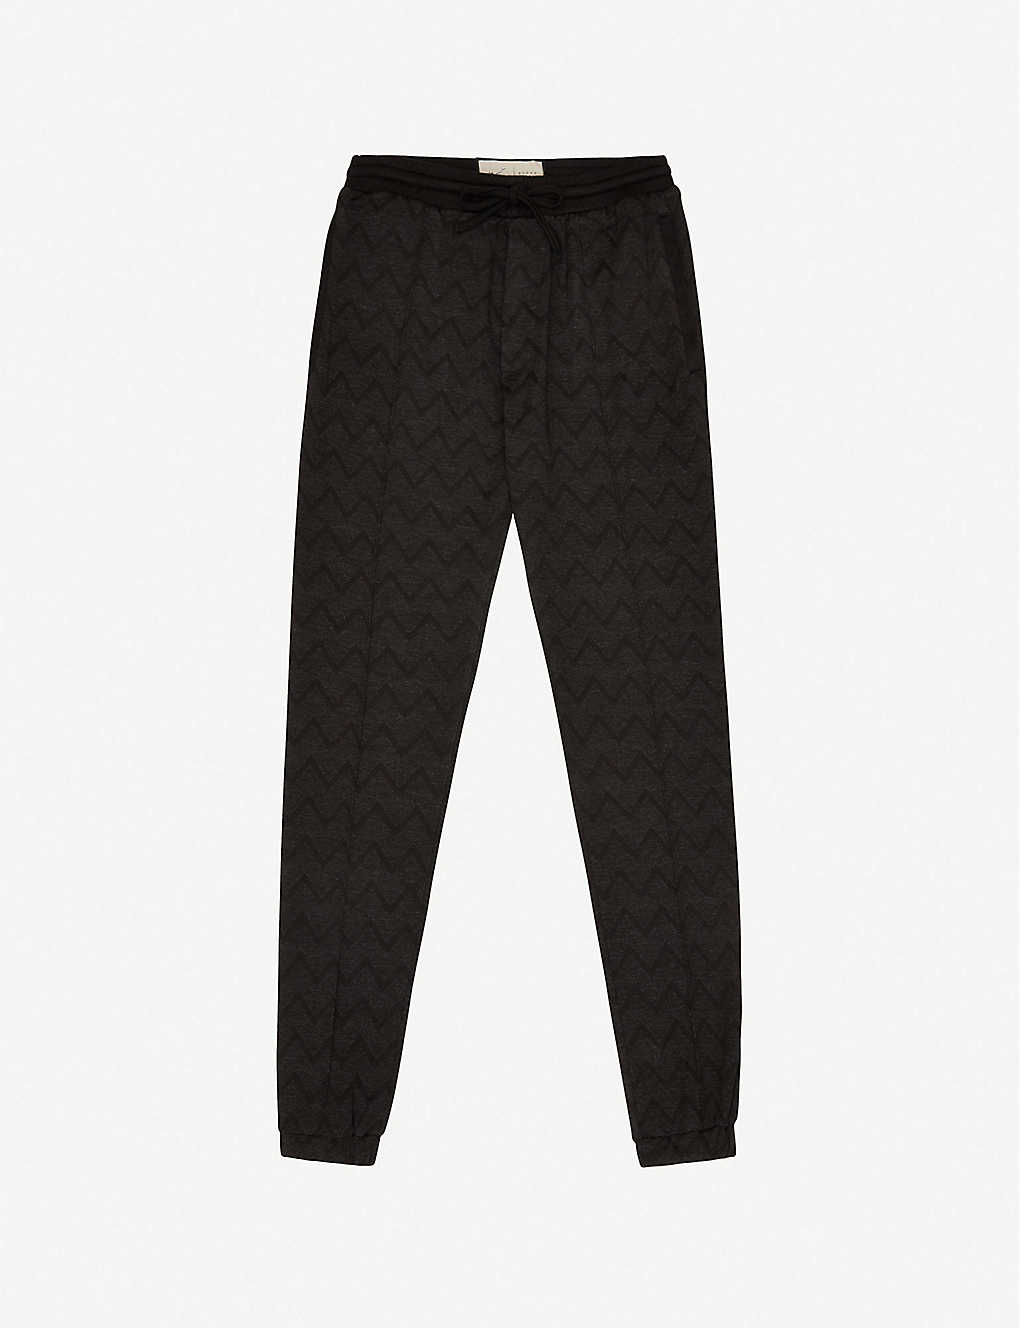 PREVU: Caspian zigzag knitted-jersey jogging bottoms